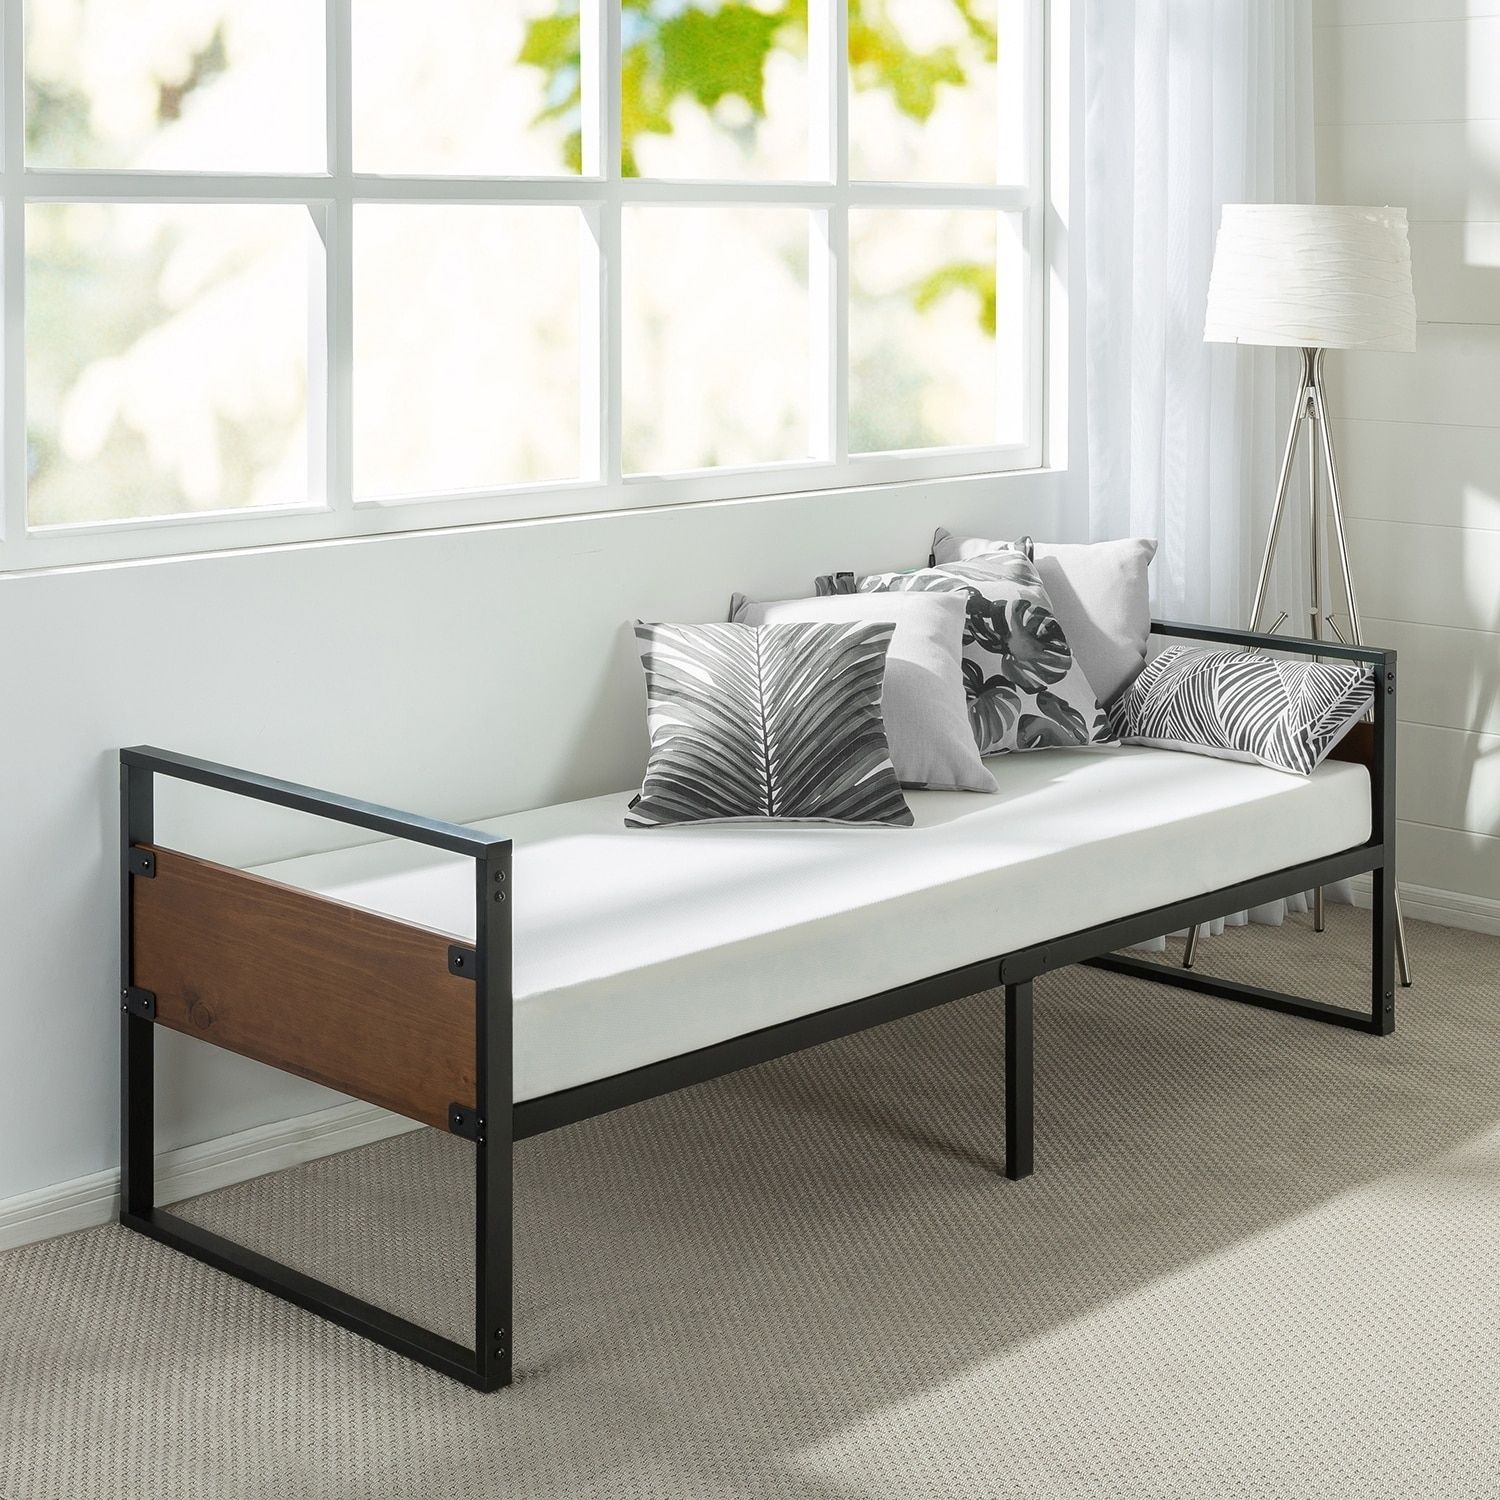 Priage By Zinus Ironline 30 Inch Narrow Size Day Bed Frame